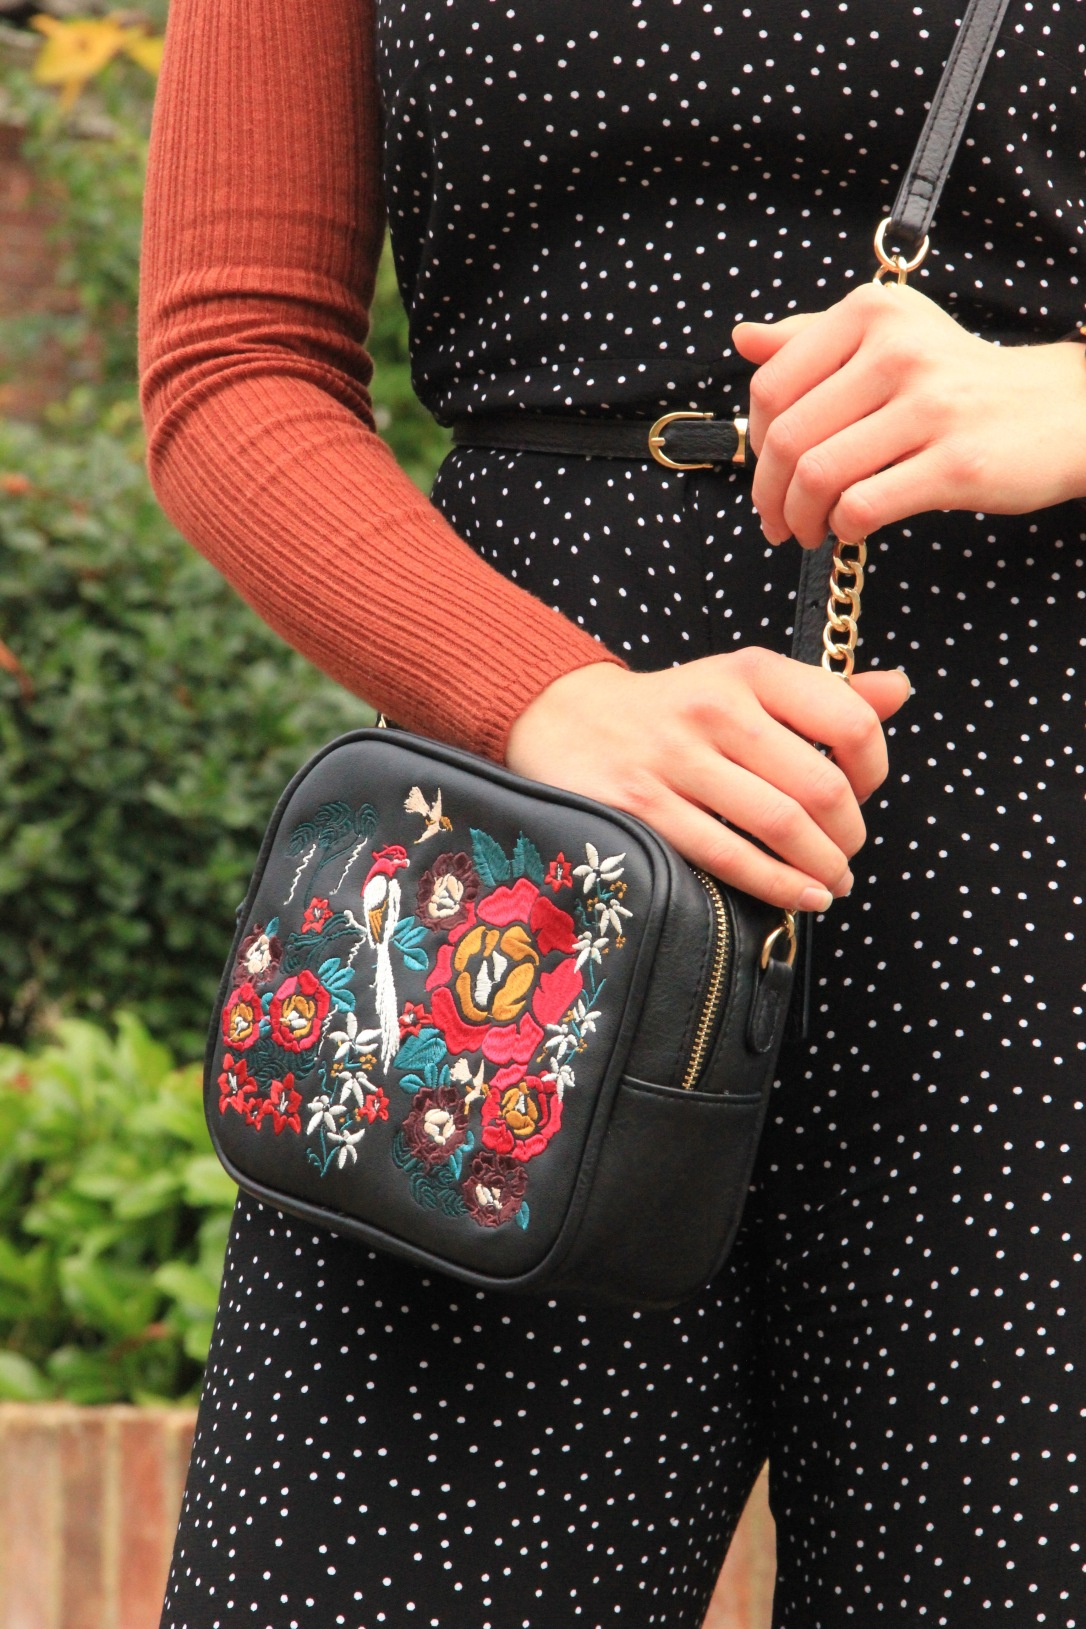 Embroidered cross body bag